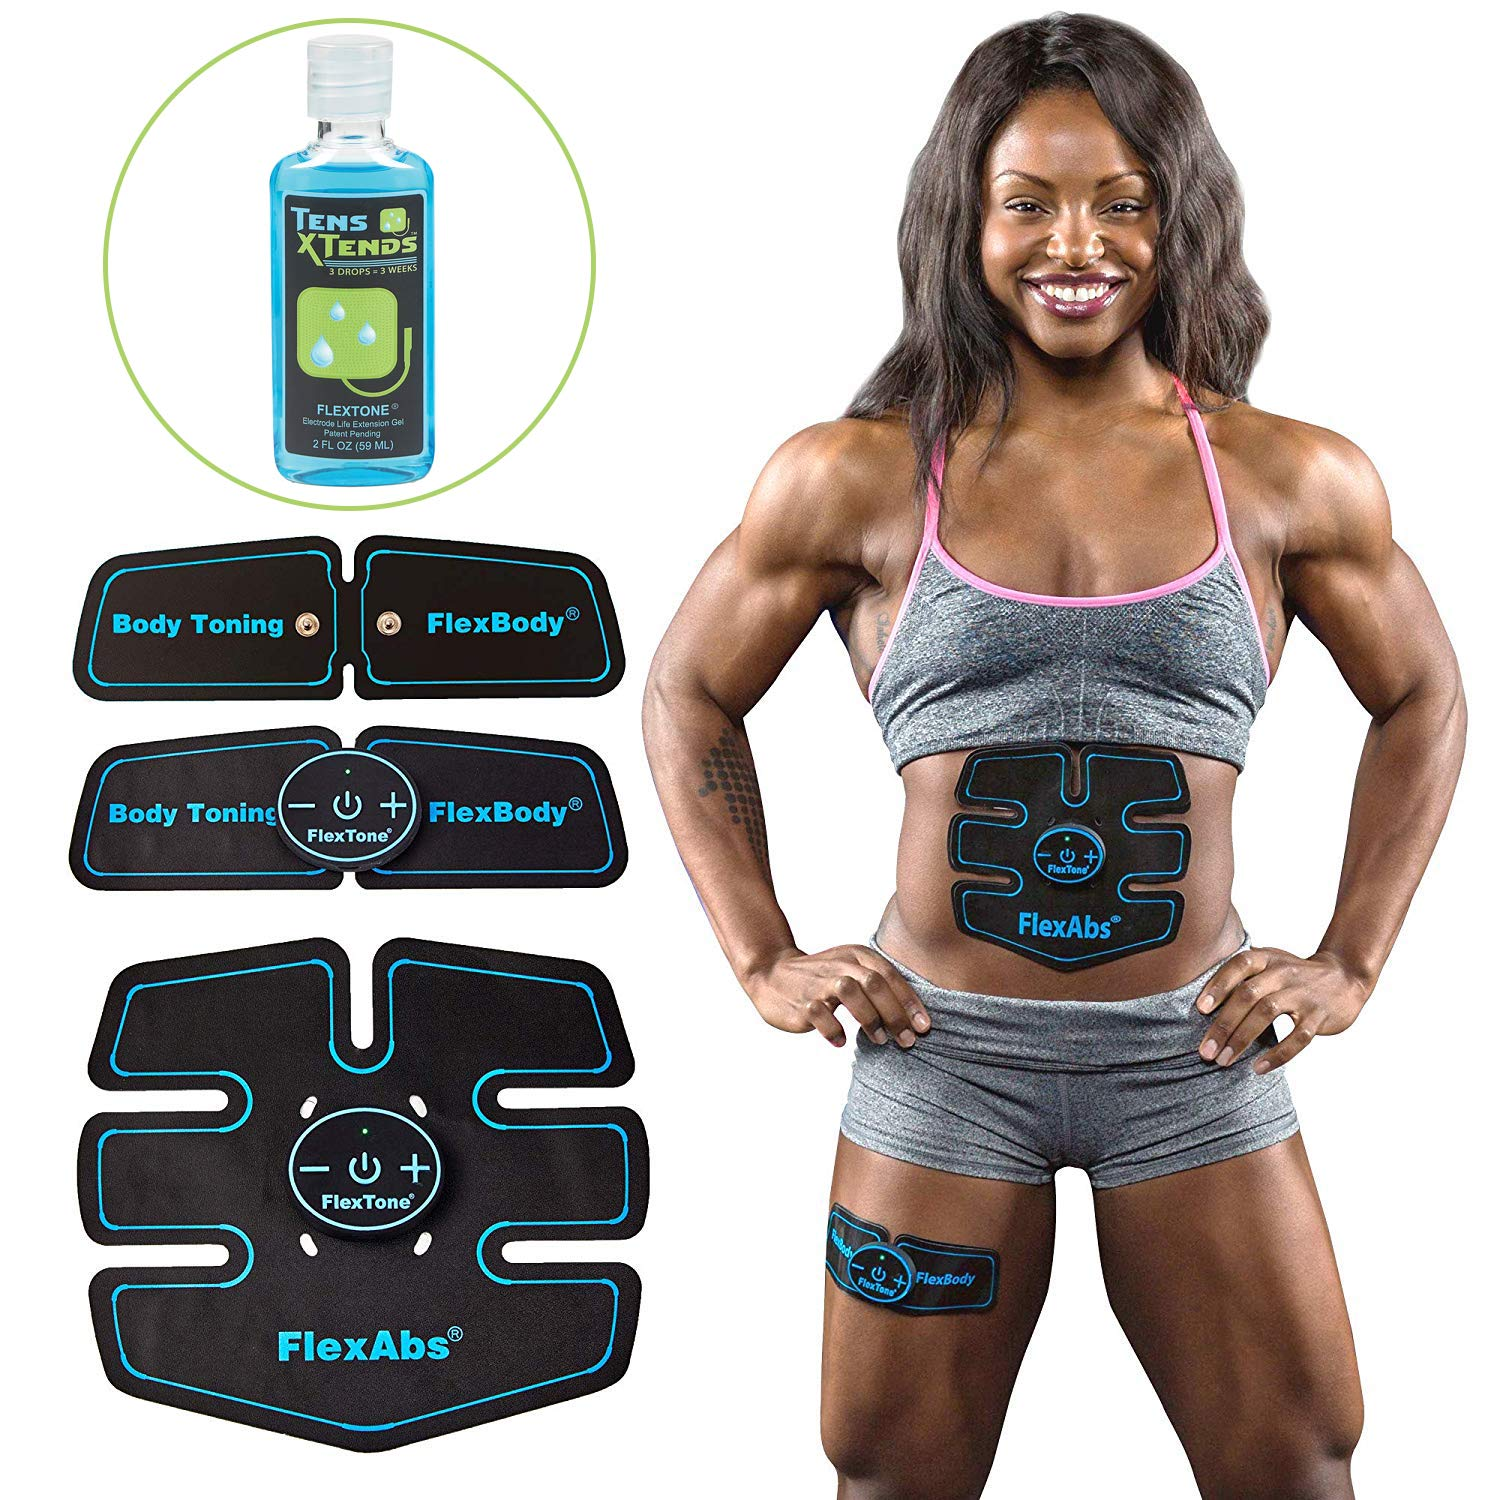 Flextone Abs Stimulator Muscle Toner - FDA Cleared | Rechargeable Wireless EMS Massager for Weight Loss | The Ultimate Electronic Power Abs Trainer for Men Women & Bodybuilders